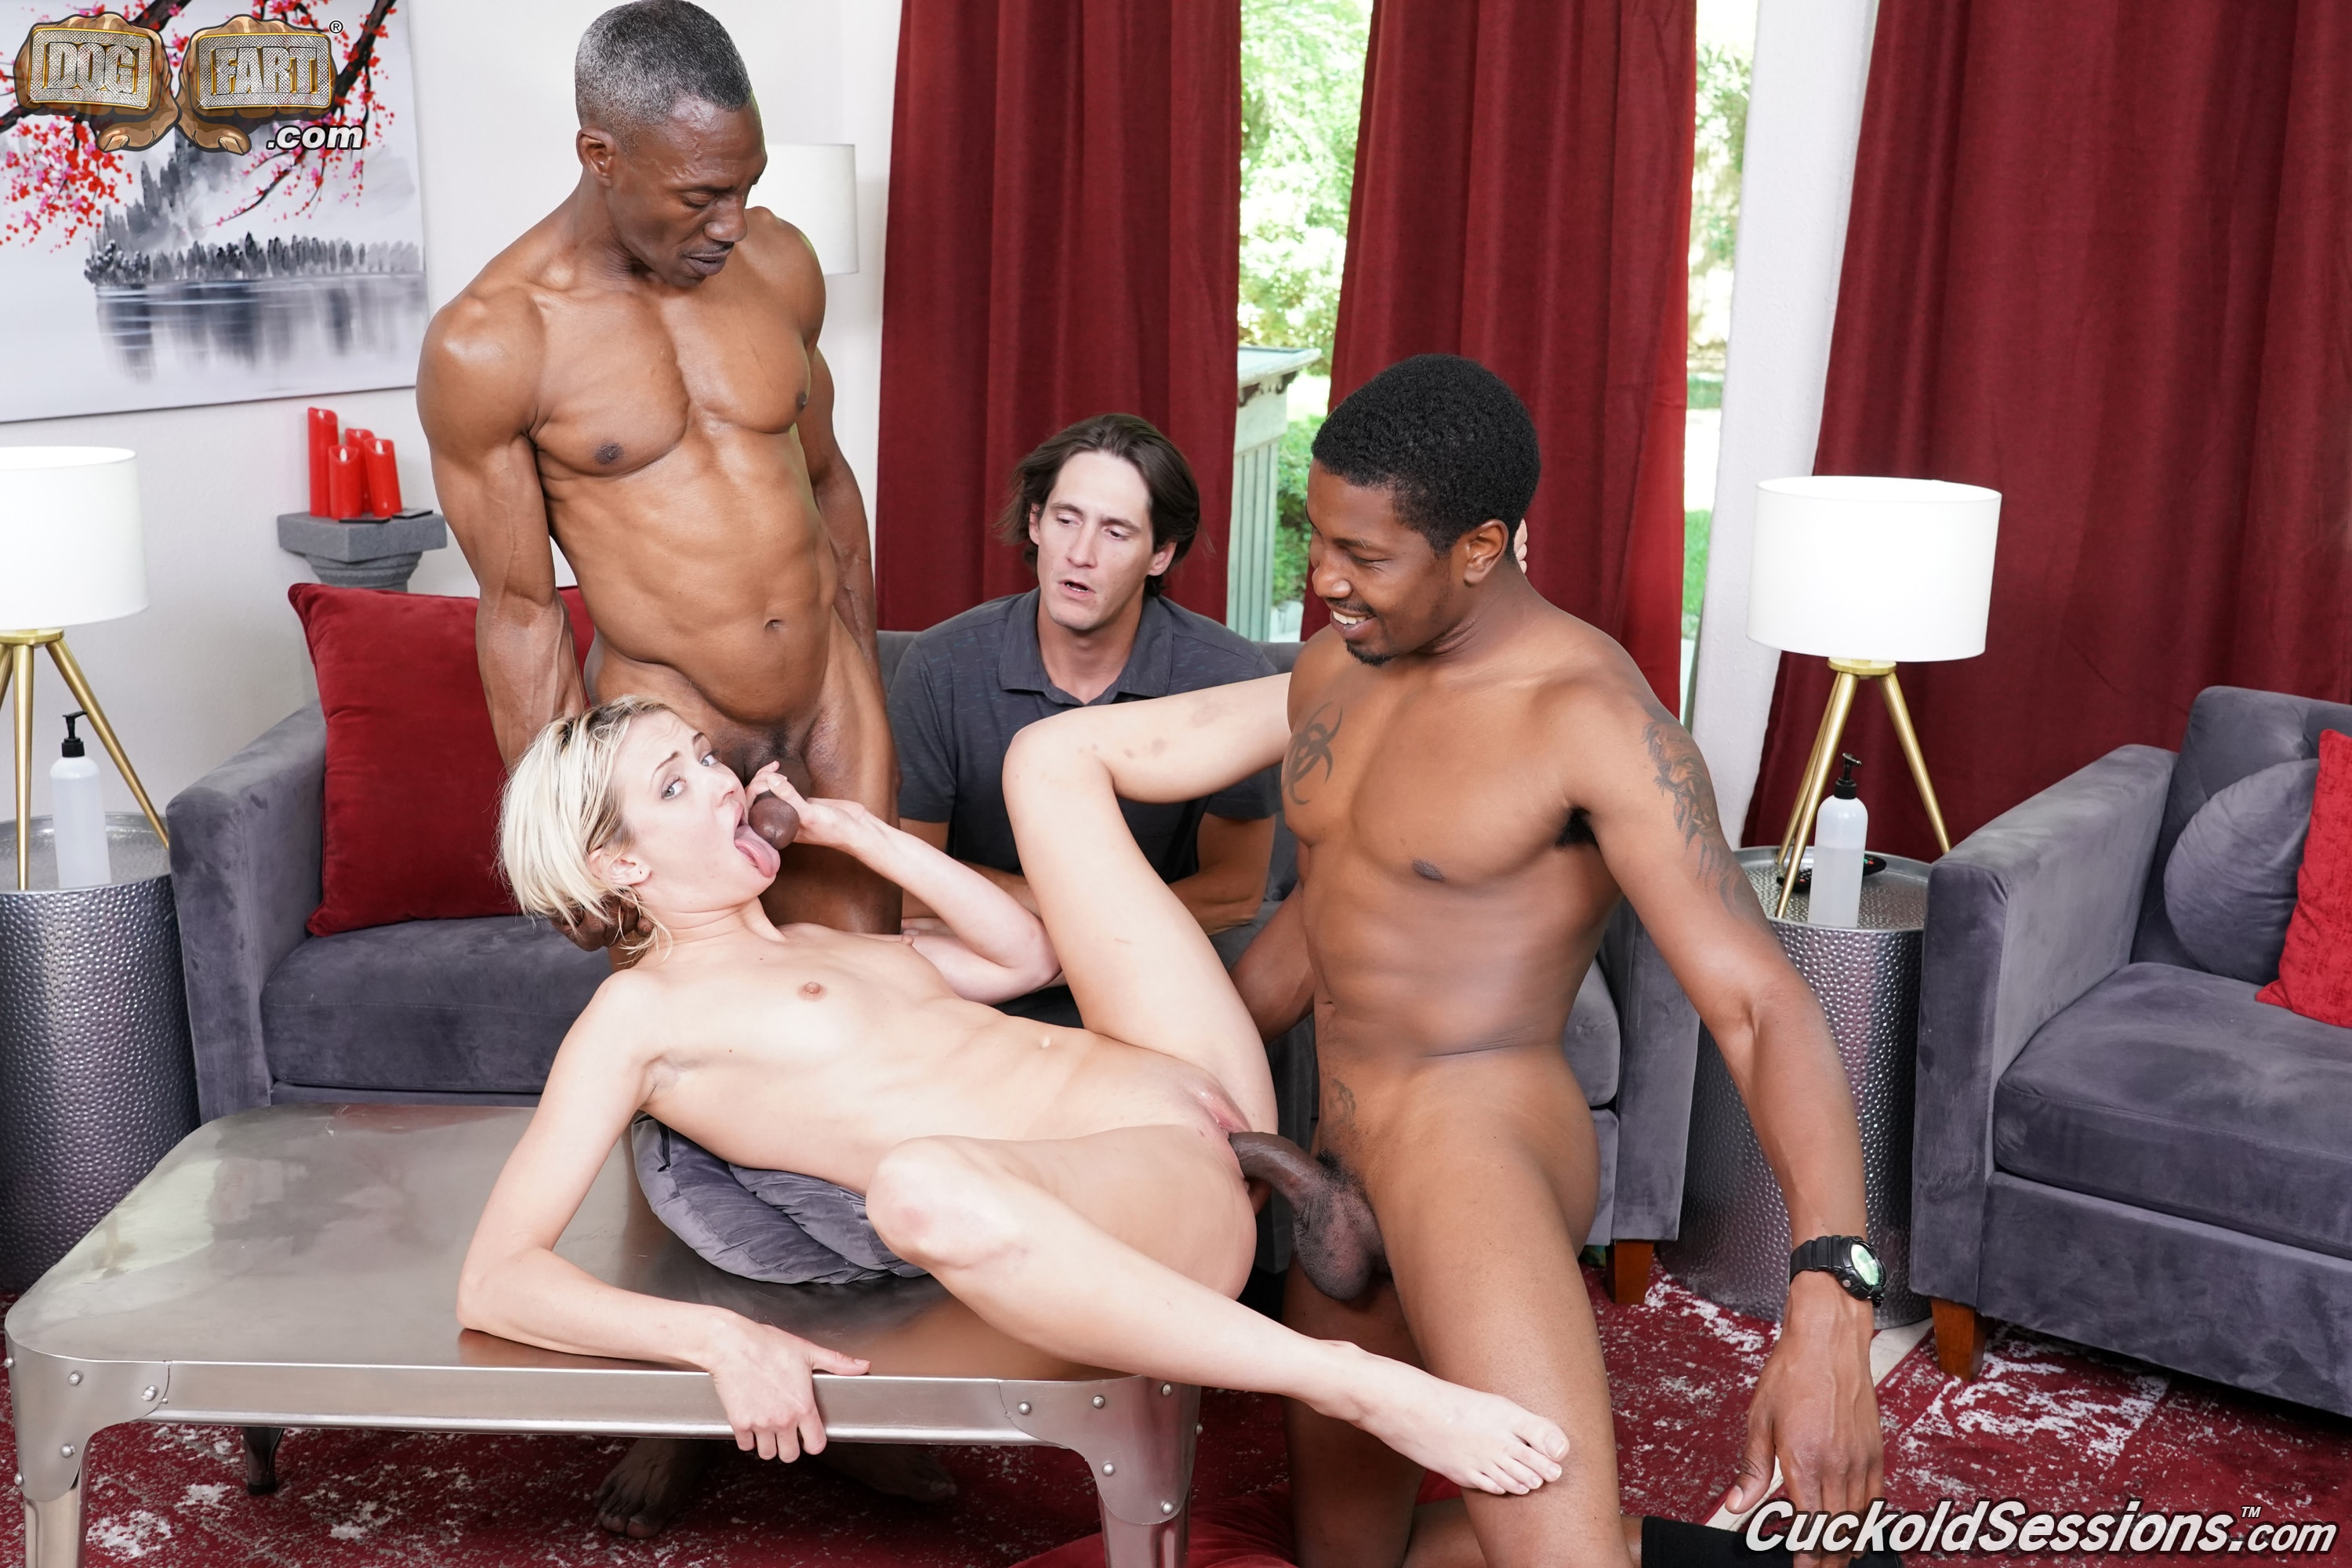 Dogfart '- Cuckold Sessions' starring Zoe Sparx (Photo 26)